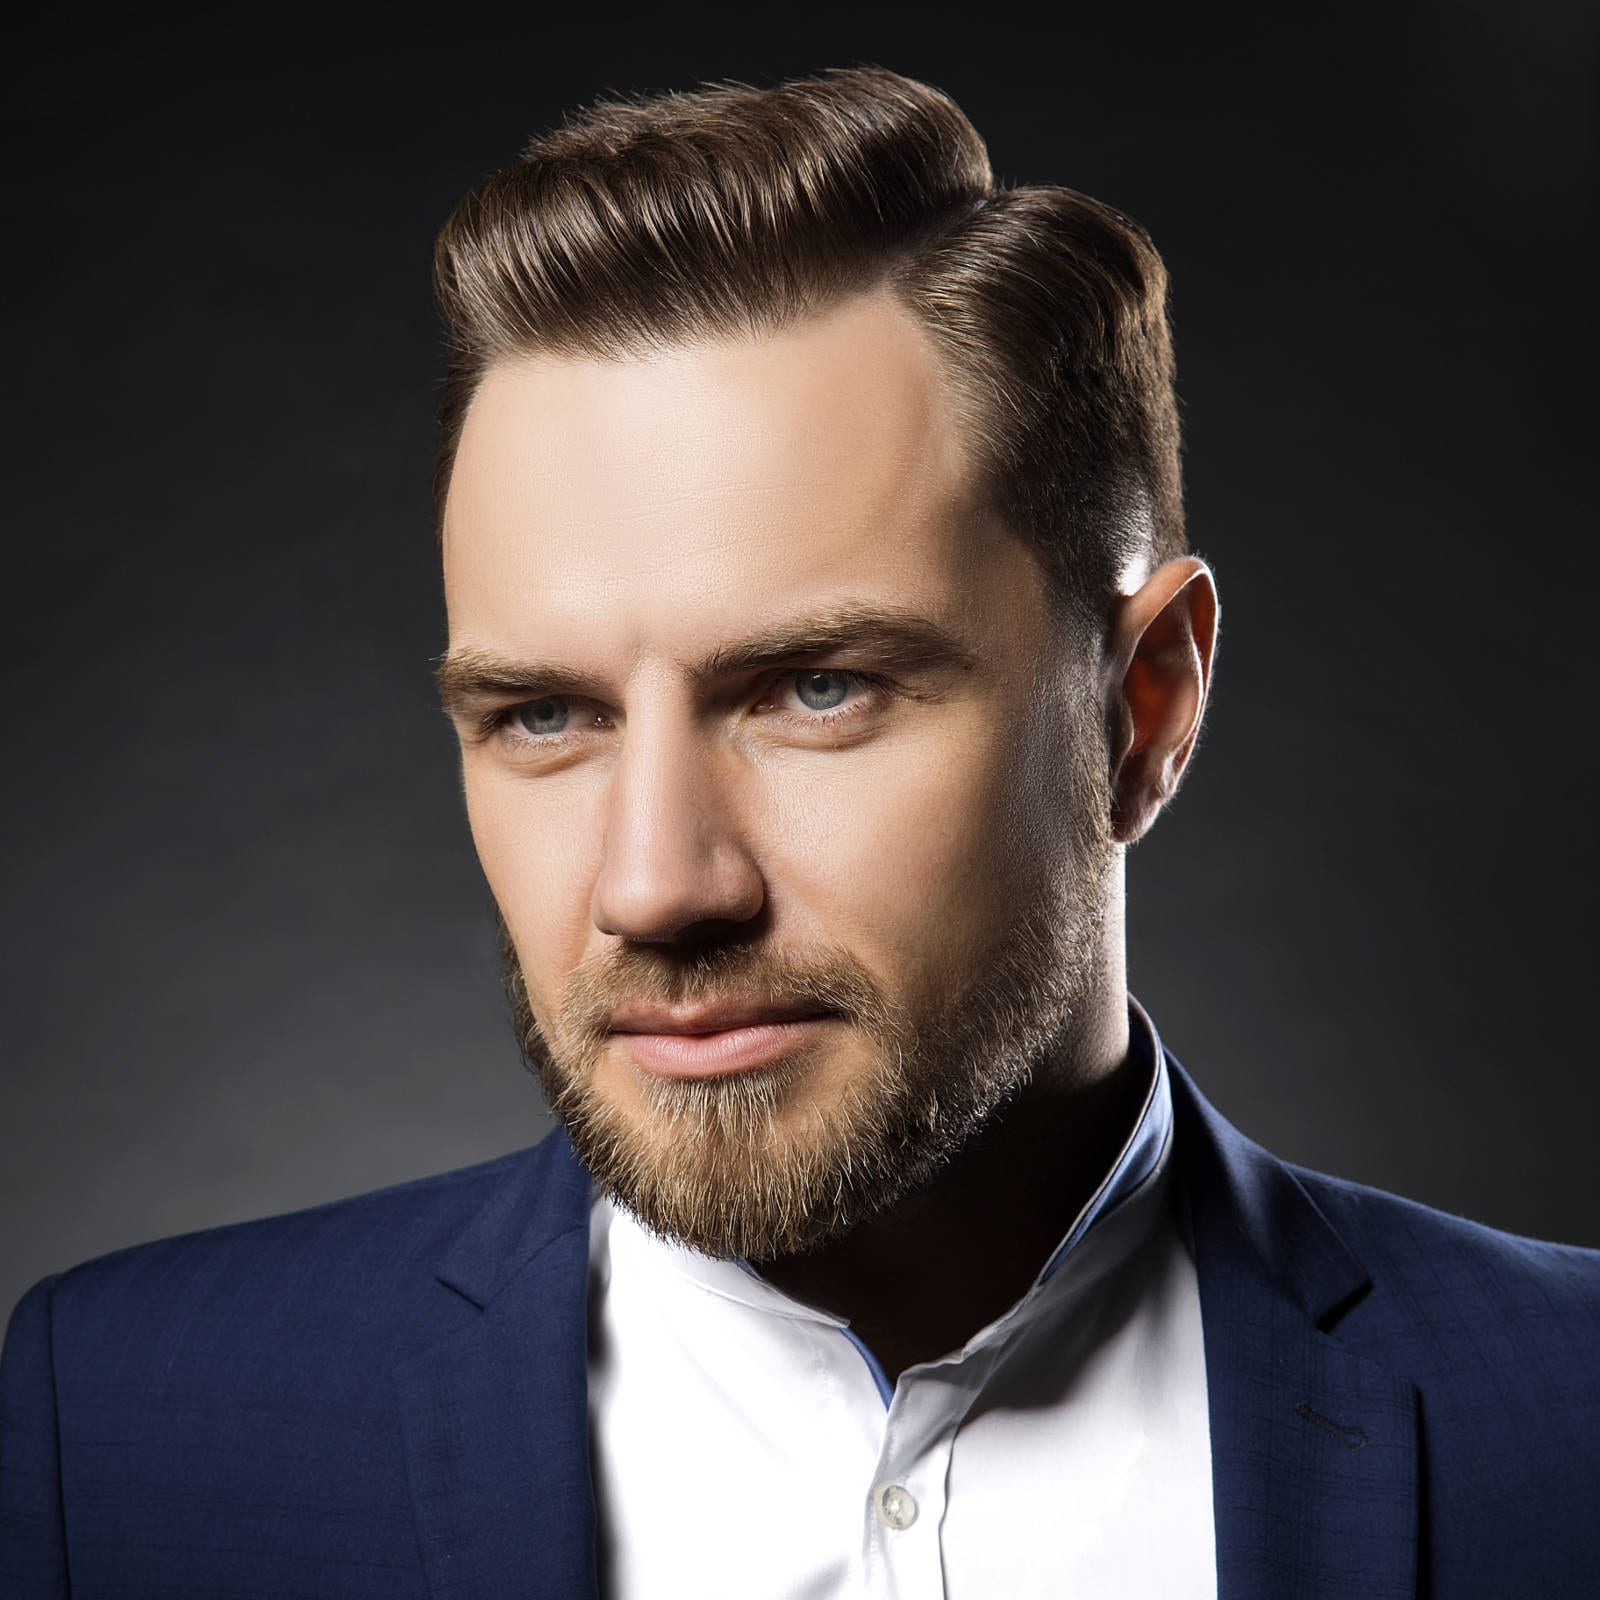 30 Side Part Haircuts: A Classic Style For Gentlemen Throughout Most Current Simple Side Part Hairstyles (Gallery 1 of 20)